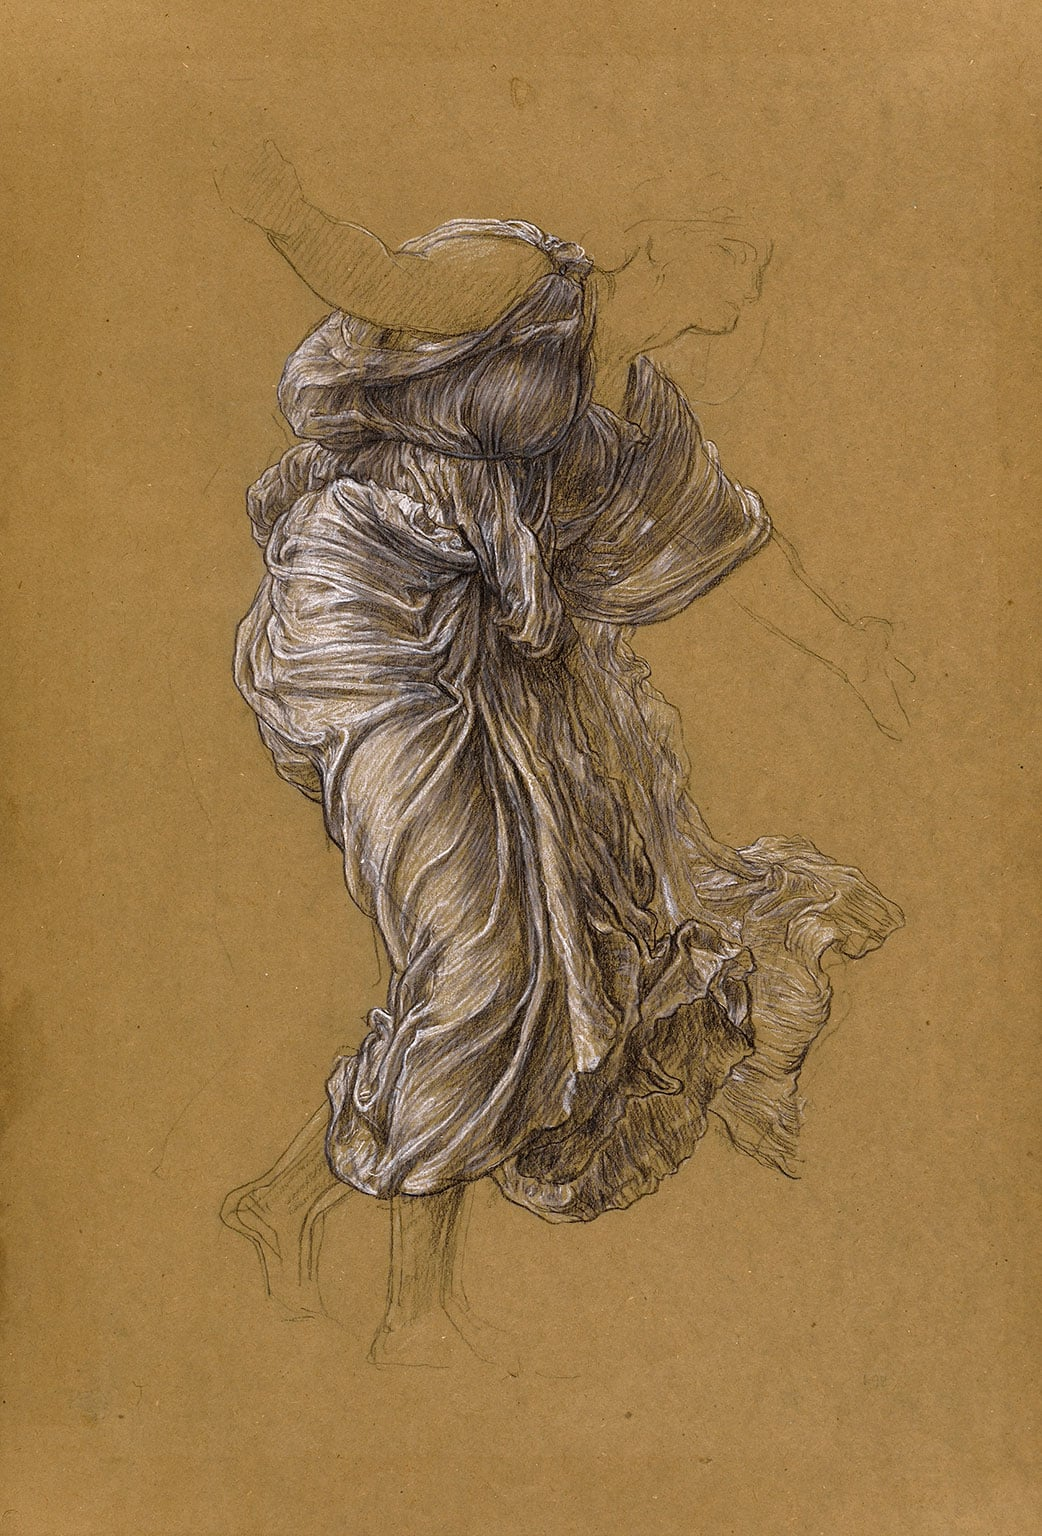 3. Brothers in Art: Drawings by Watts and Leighton, Watts Gallery, 50% off with National Art Pass - Frederic Leighton, Study for 'Return of Persephone' Drapery for Demeter, c. 1890 Leighton House